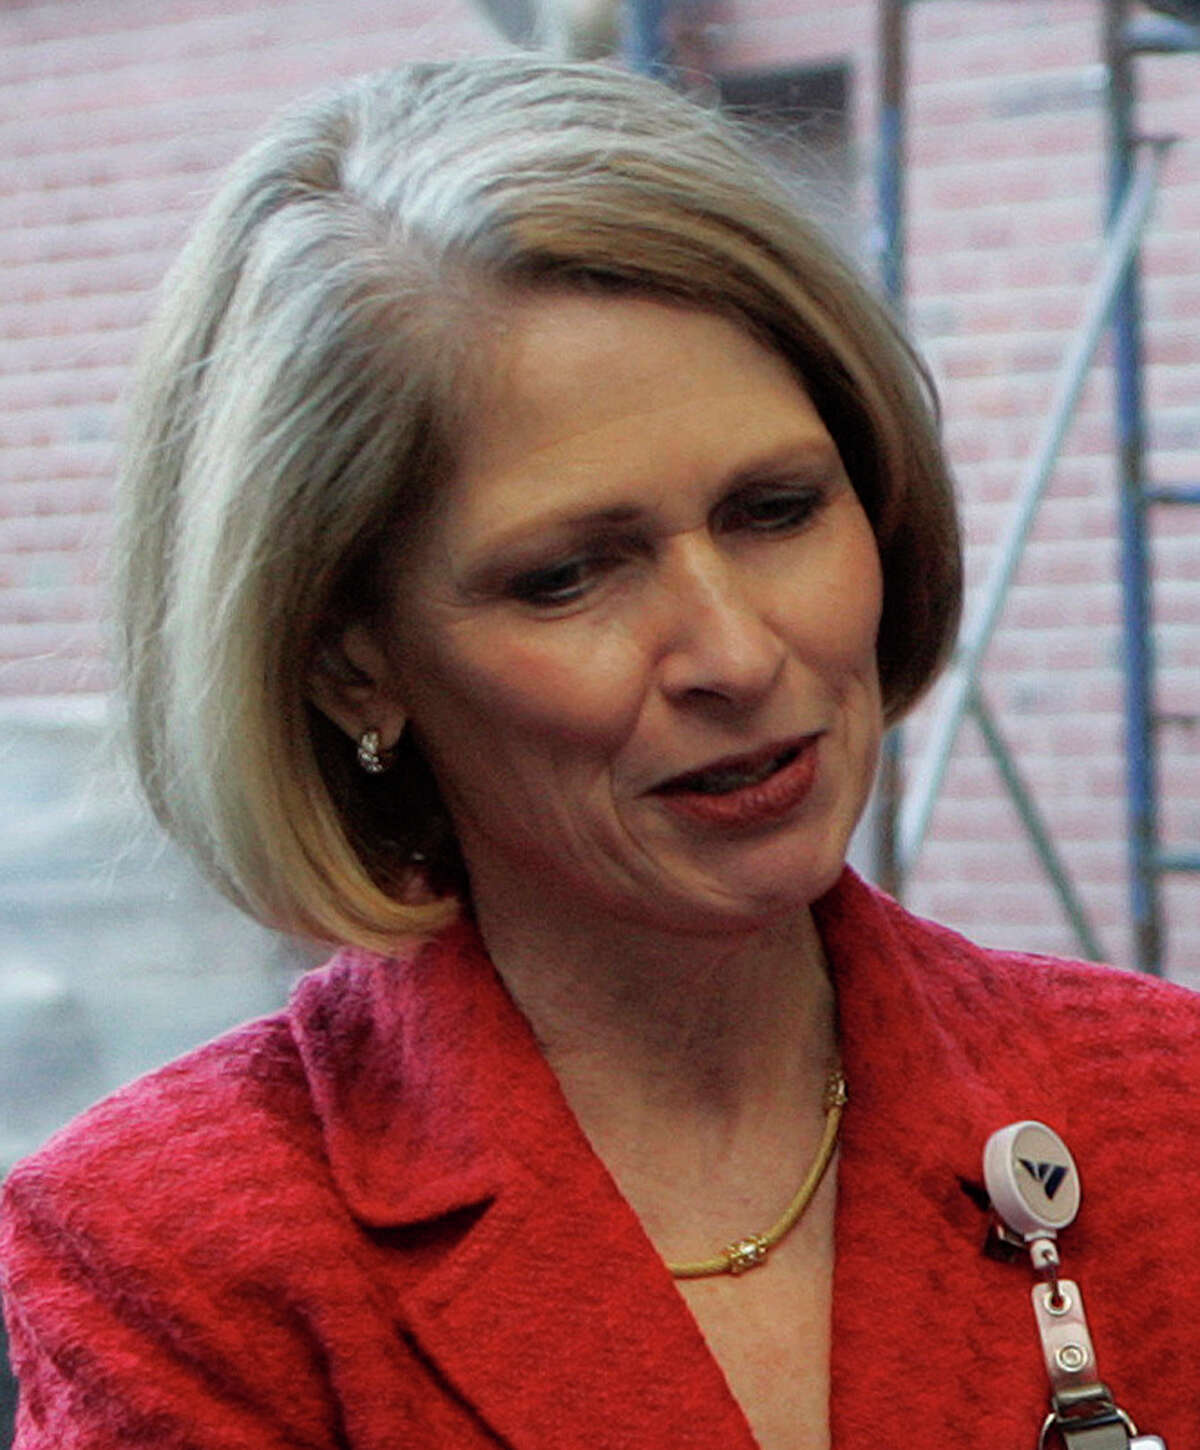 Marna Borgstrom, president and CEO of Yale New Haven Health System Salary$2,749,681 Benefits: $860,669 Total: $3,610,350 (top-paid in system)